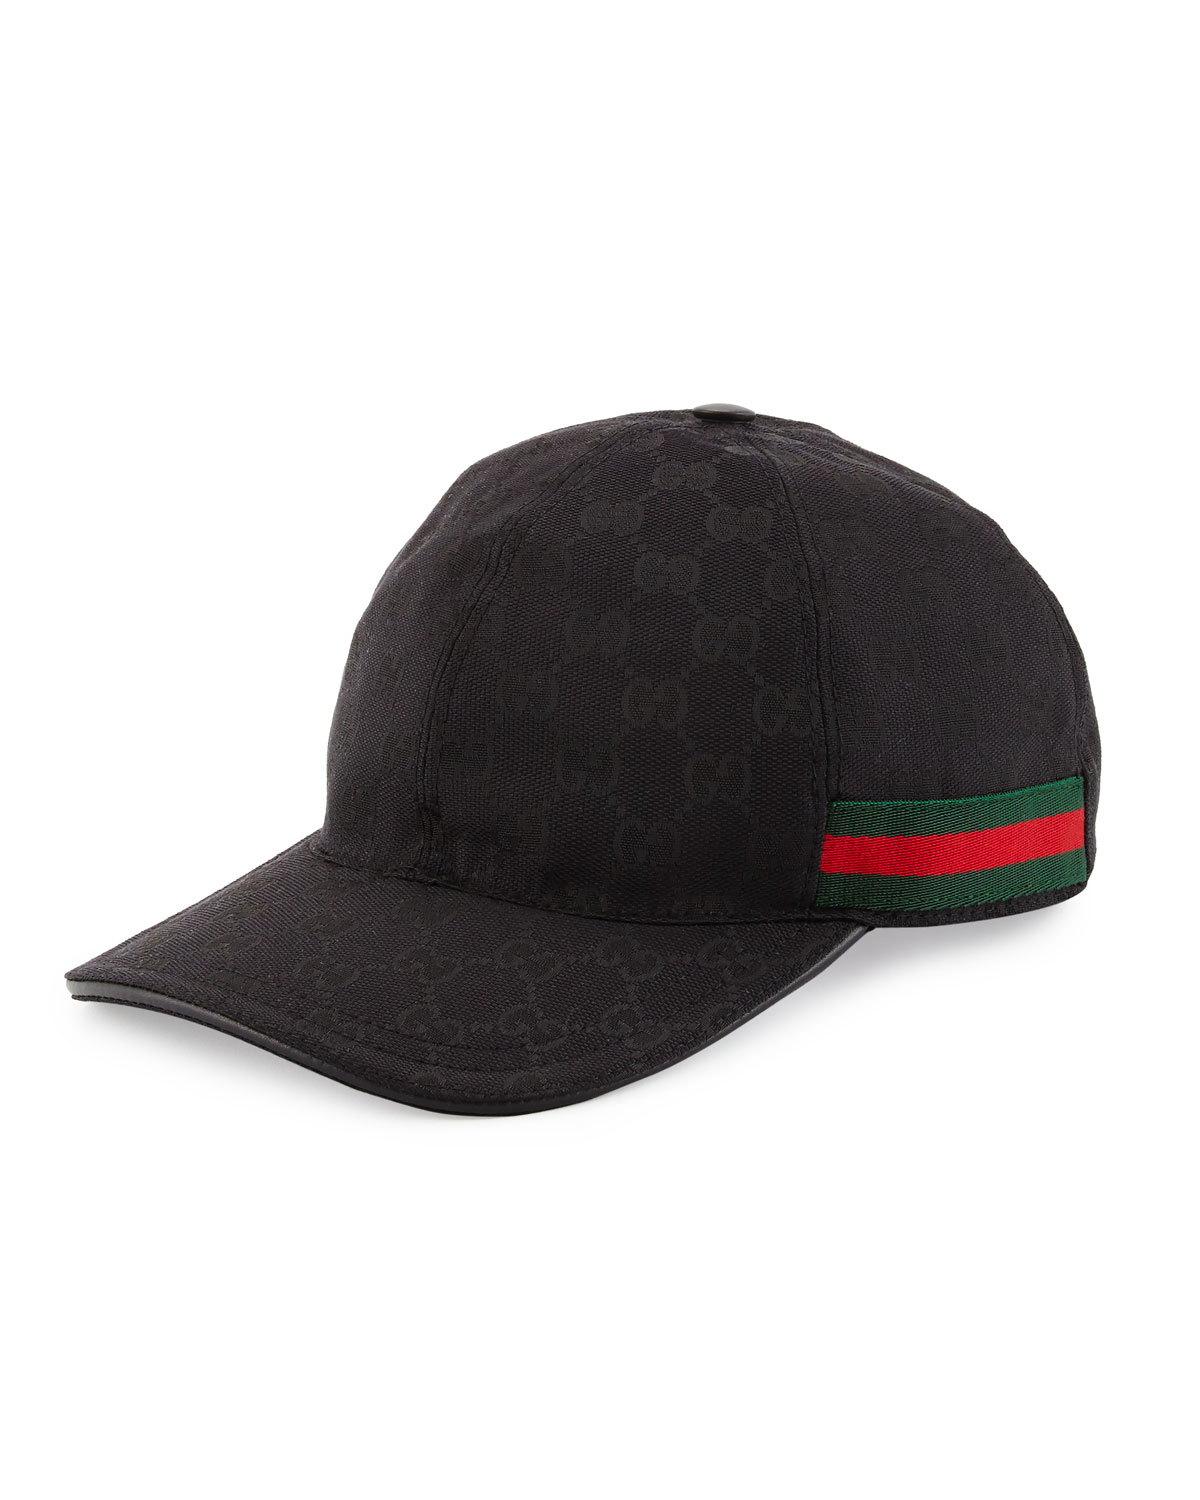 gucci gg print baseball cap w web trim in black for men. Black Bedroom Furniture Sets. Home Design Ideas